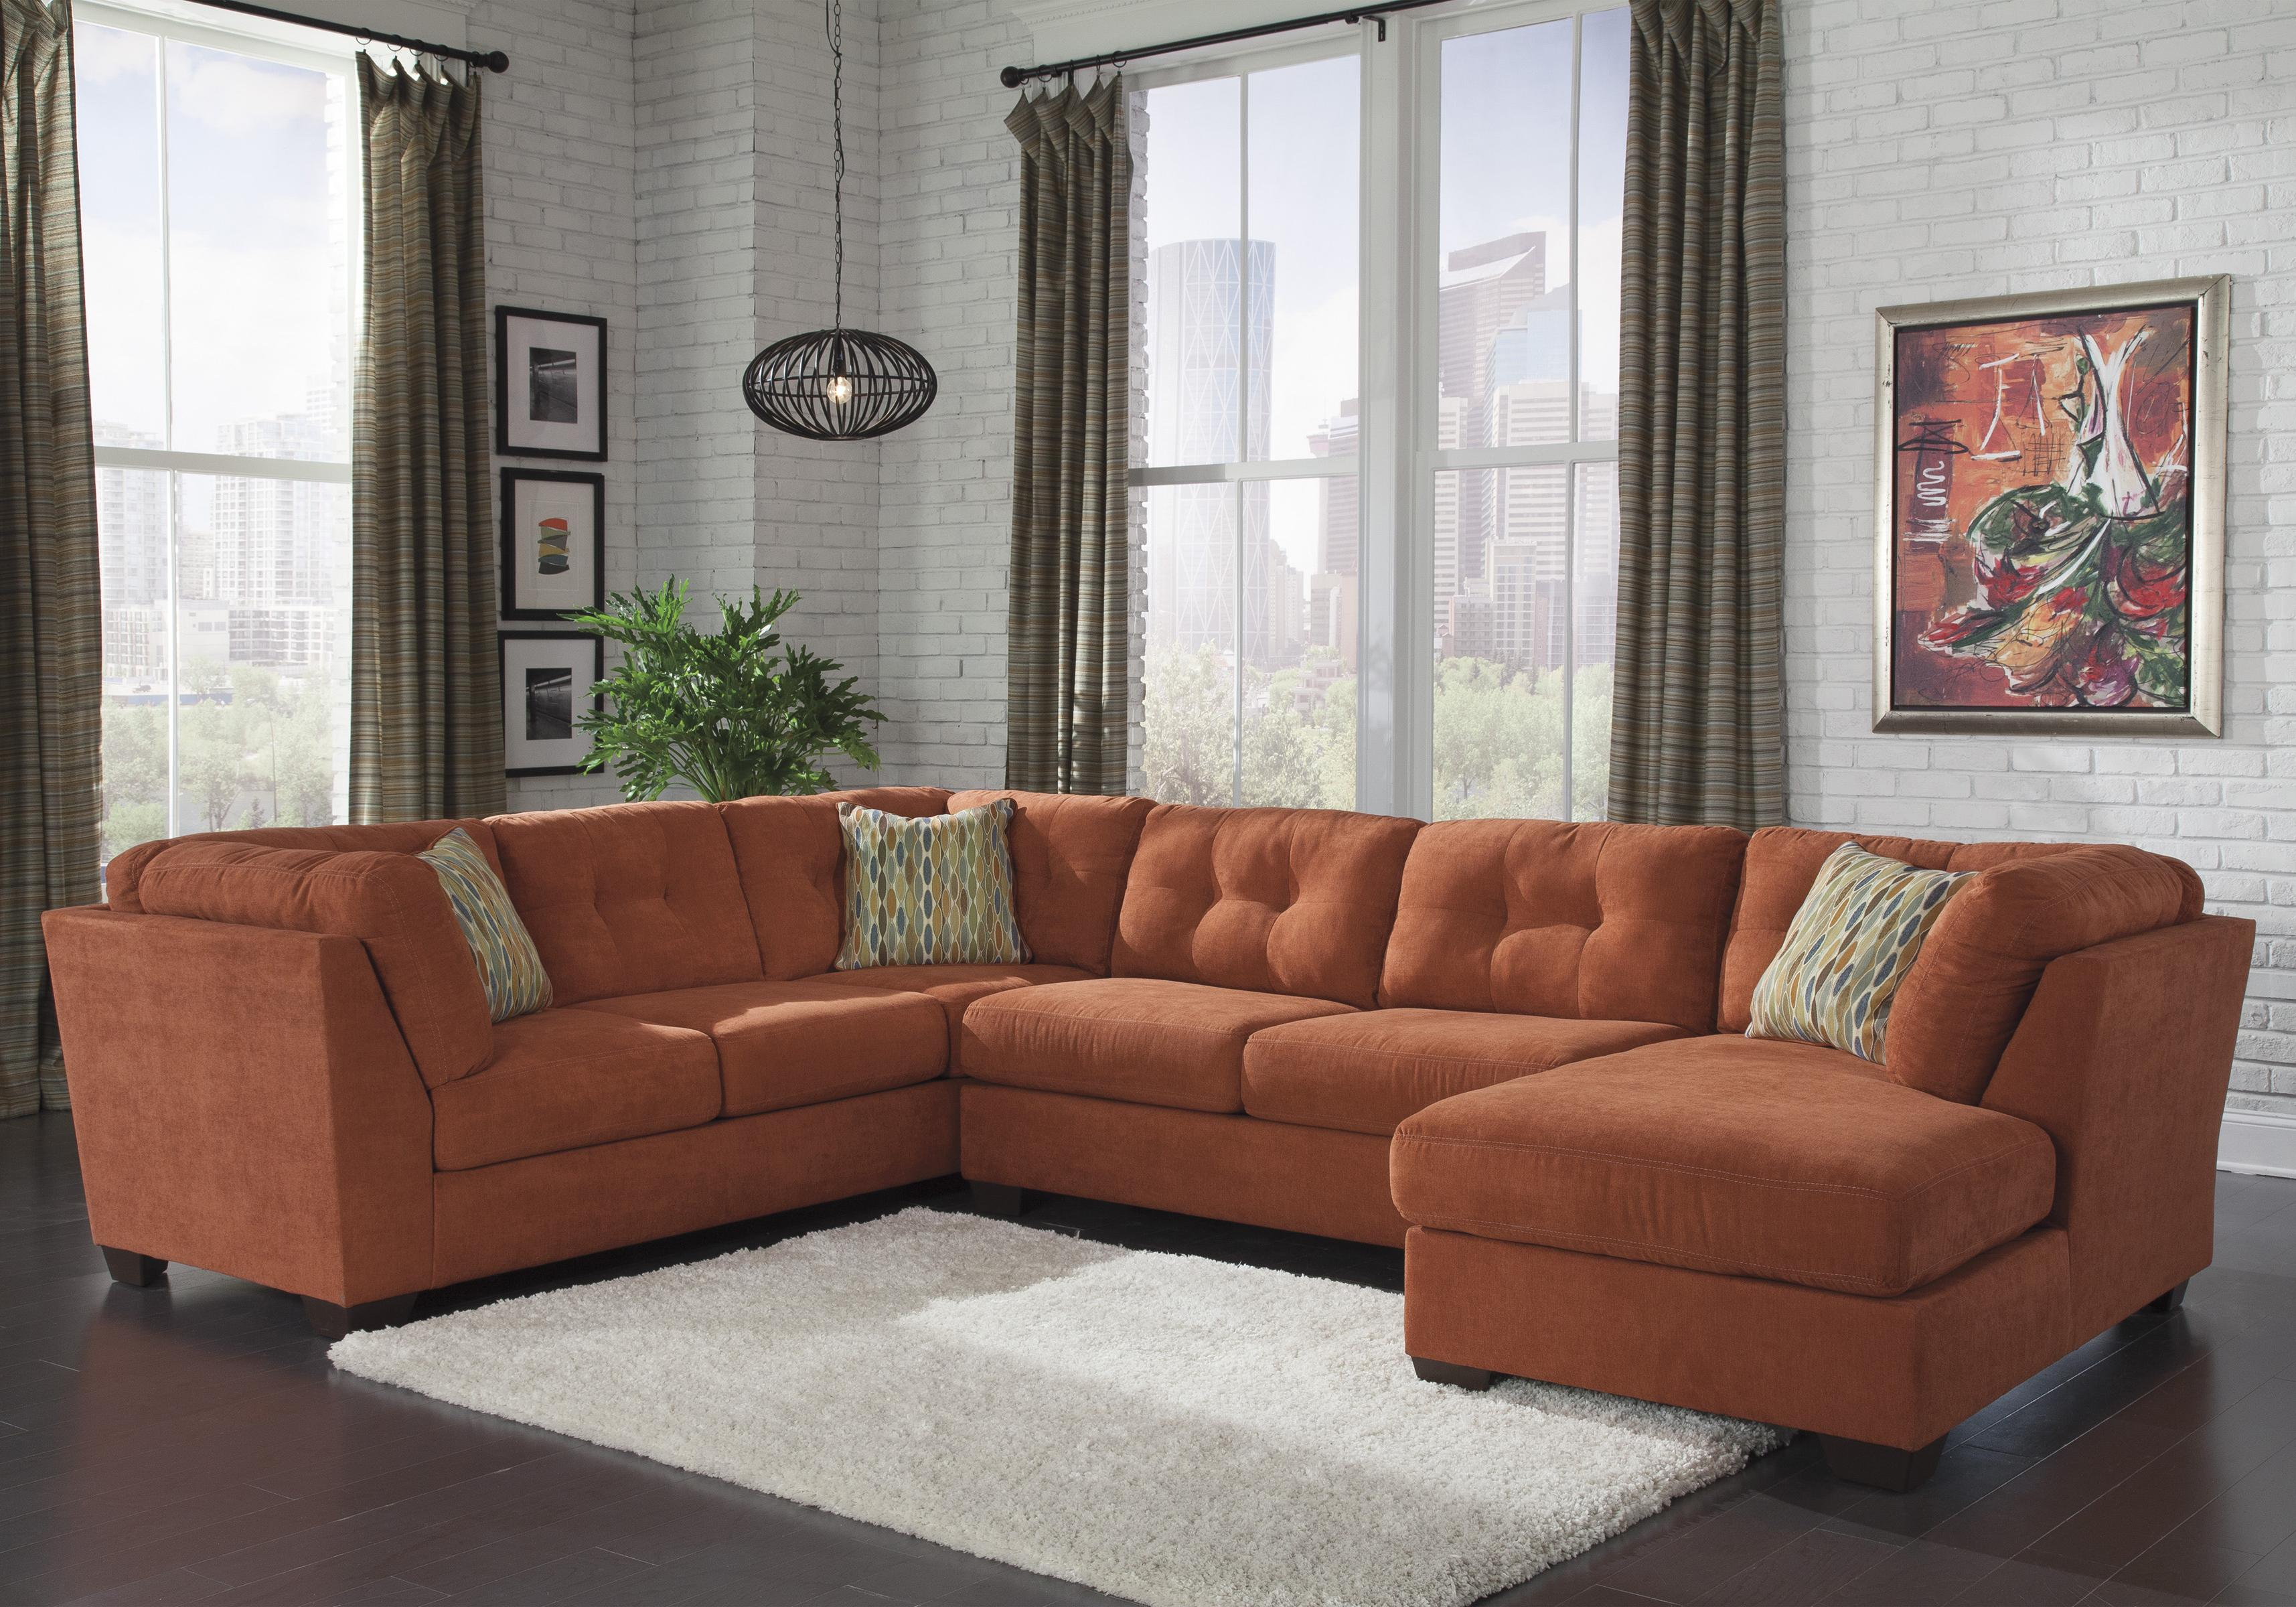 Benchcraft Delta City - Rust 3-Piece Modular Sectional with Right Chaise - Item Number: 1970138+34+17